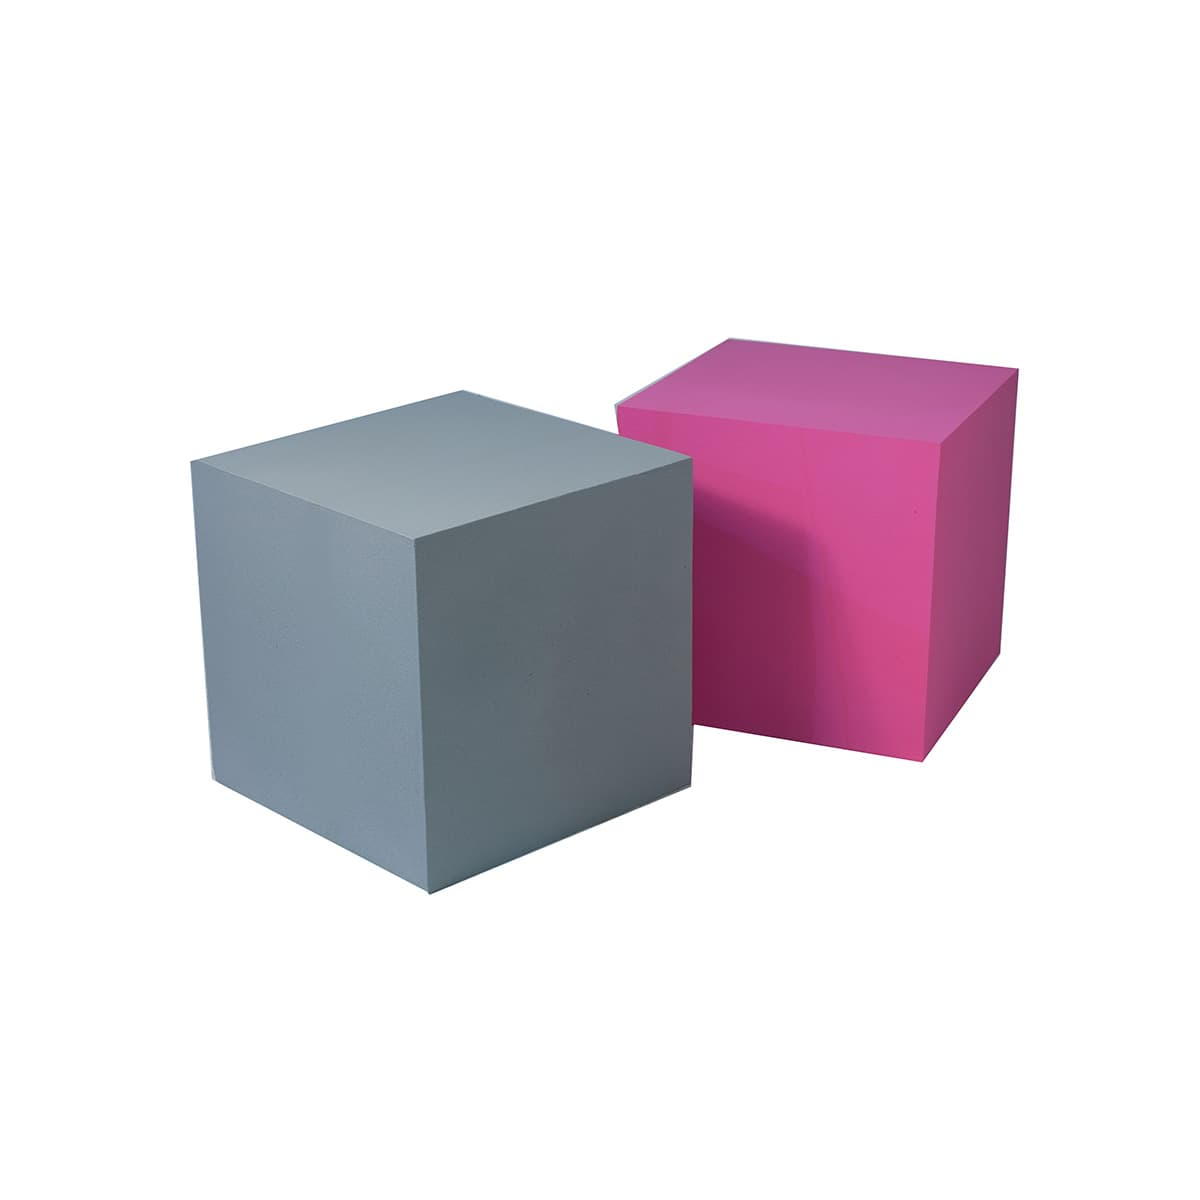 _0003_Block_Blocklets_grey-pink_isolated